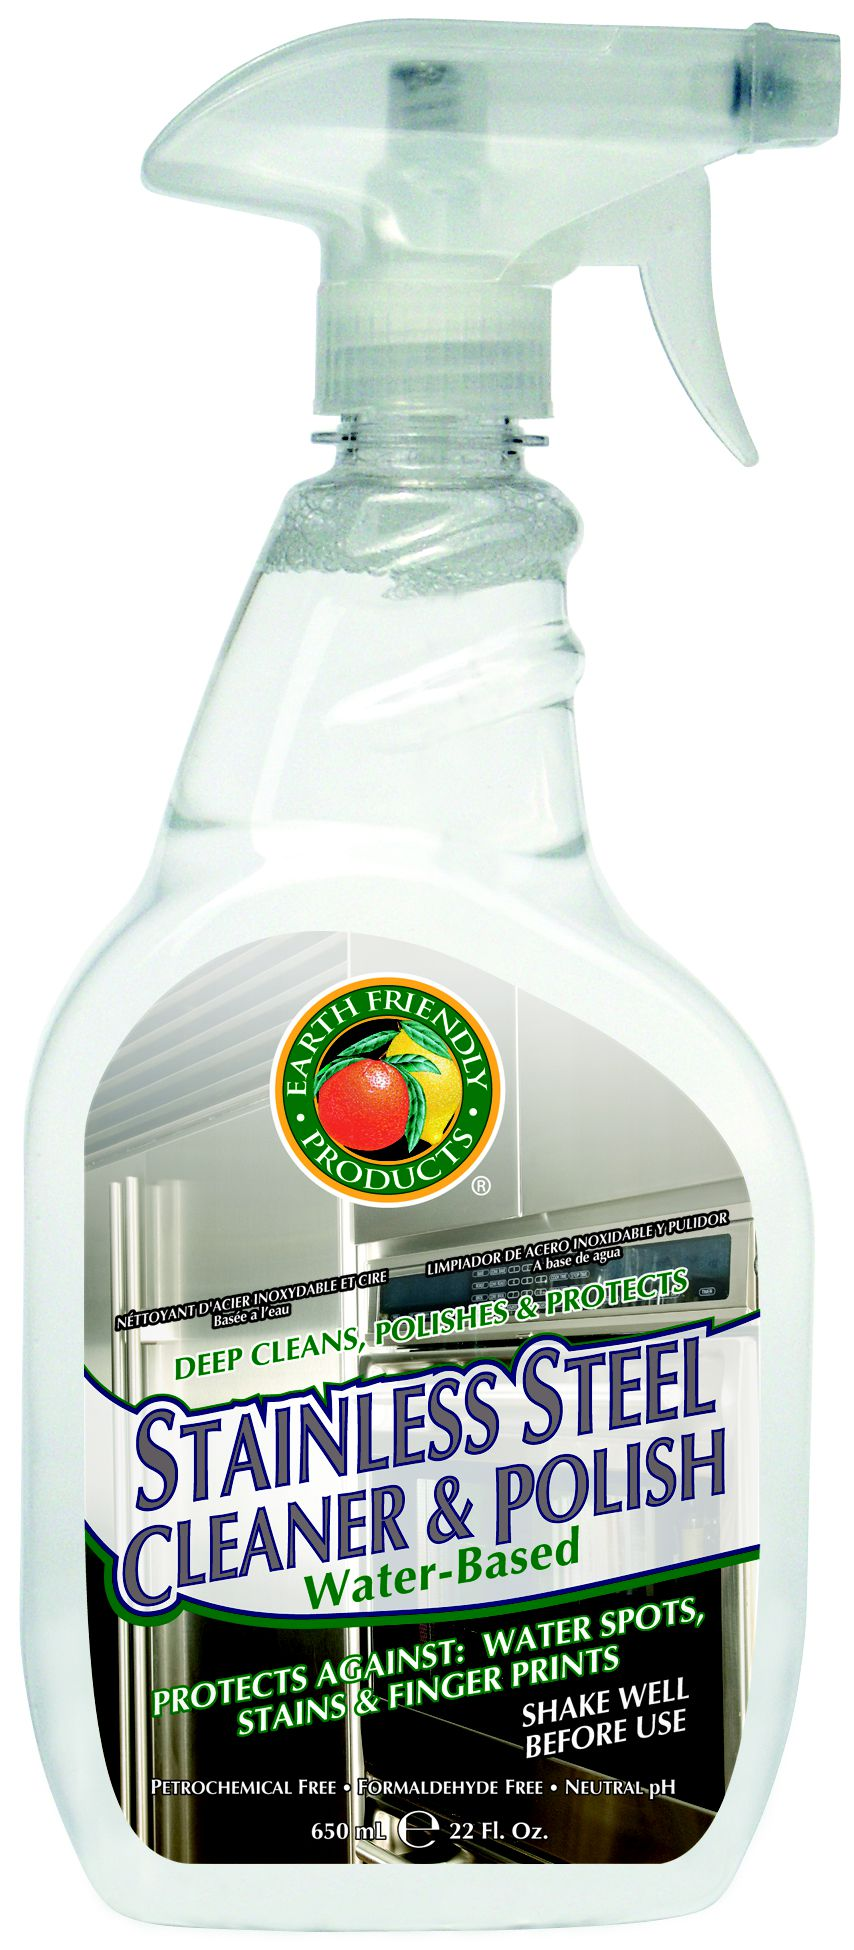 Earth Friendly Products Stainless Steel Cleaner and Polish